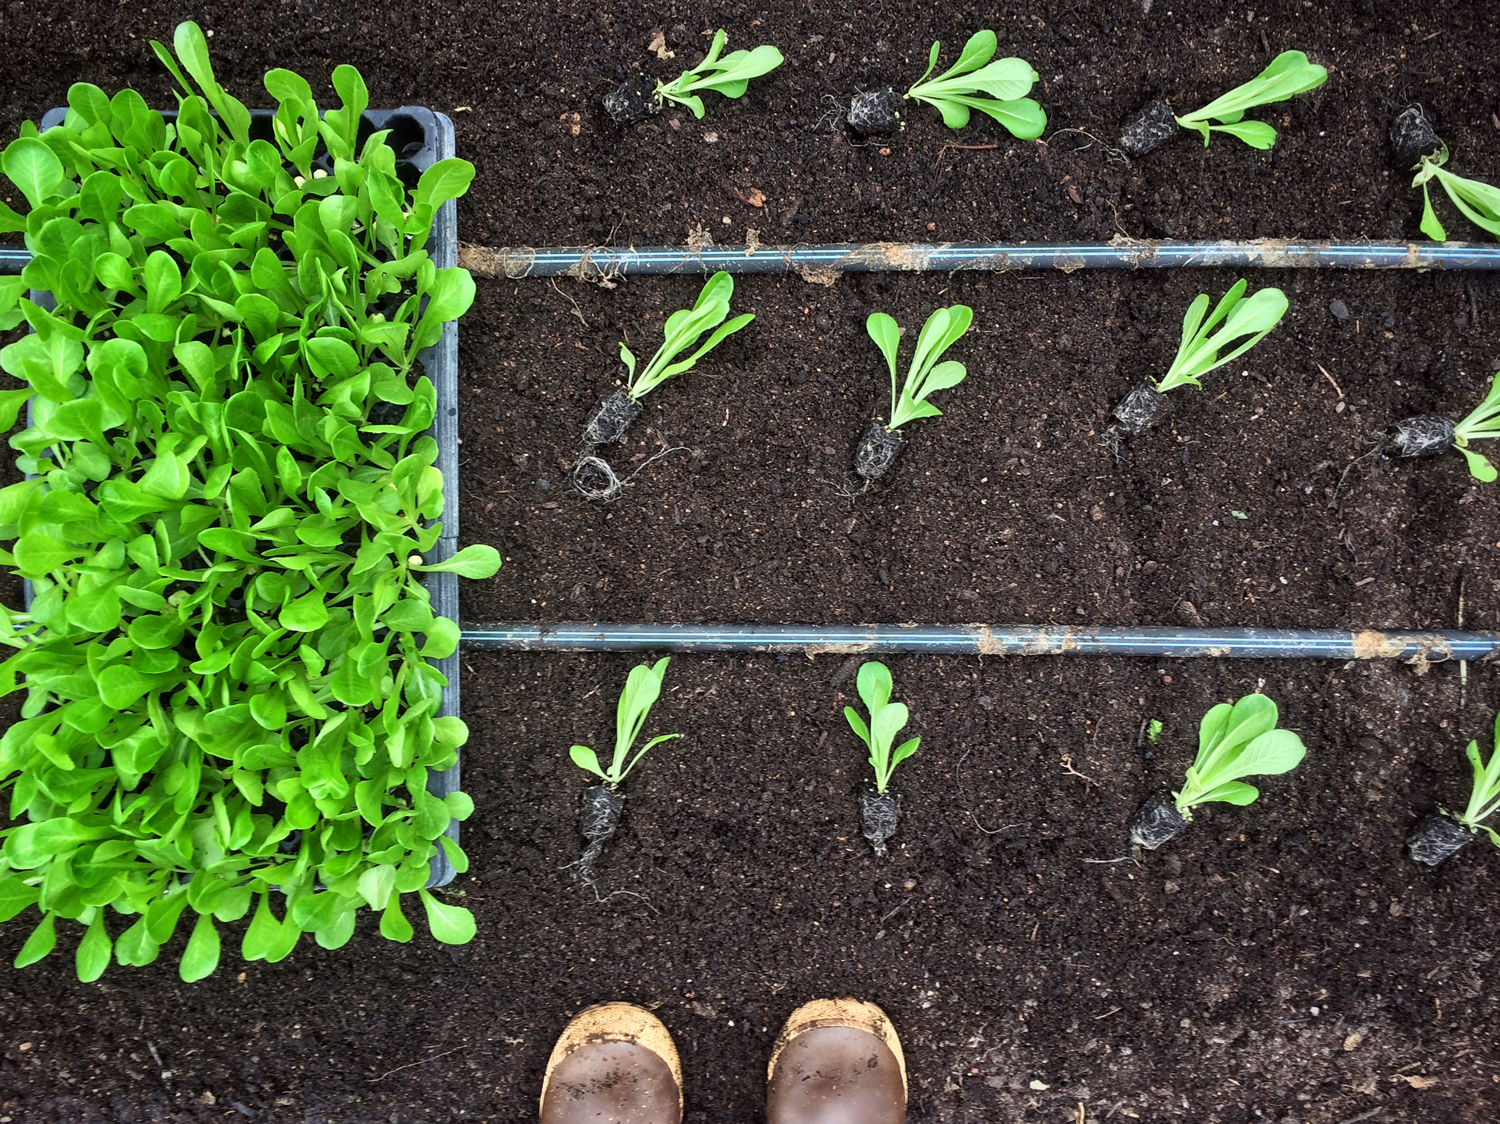 rich soil with rows of green leaves